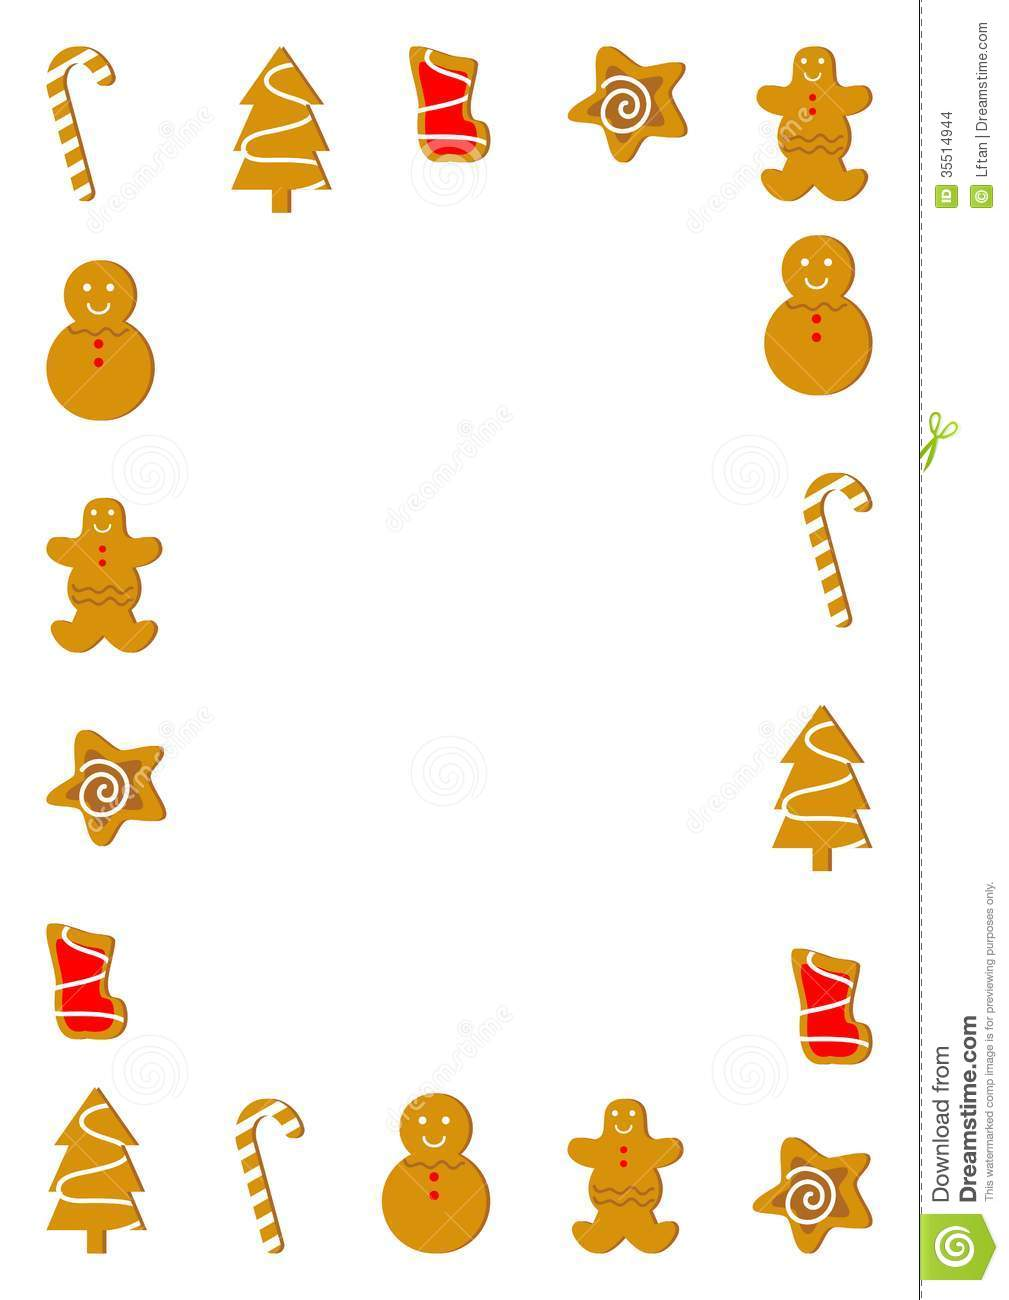 Christmas Cookies Images Clip Art (84+).